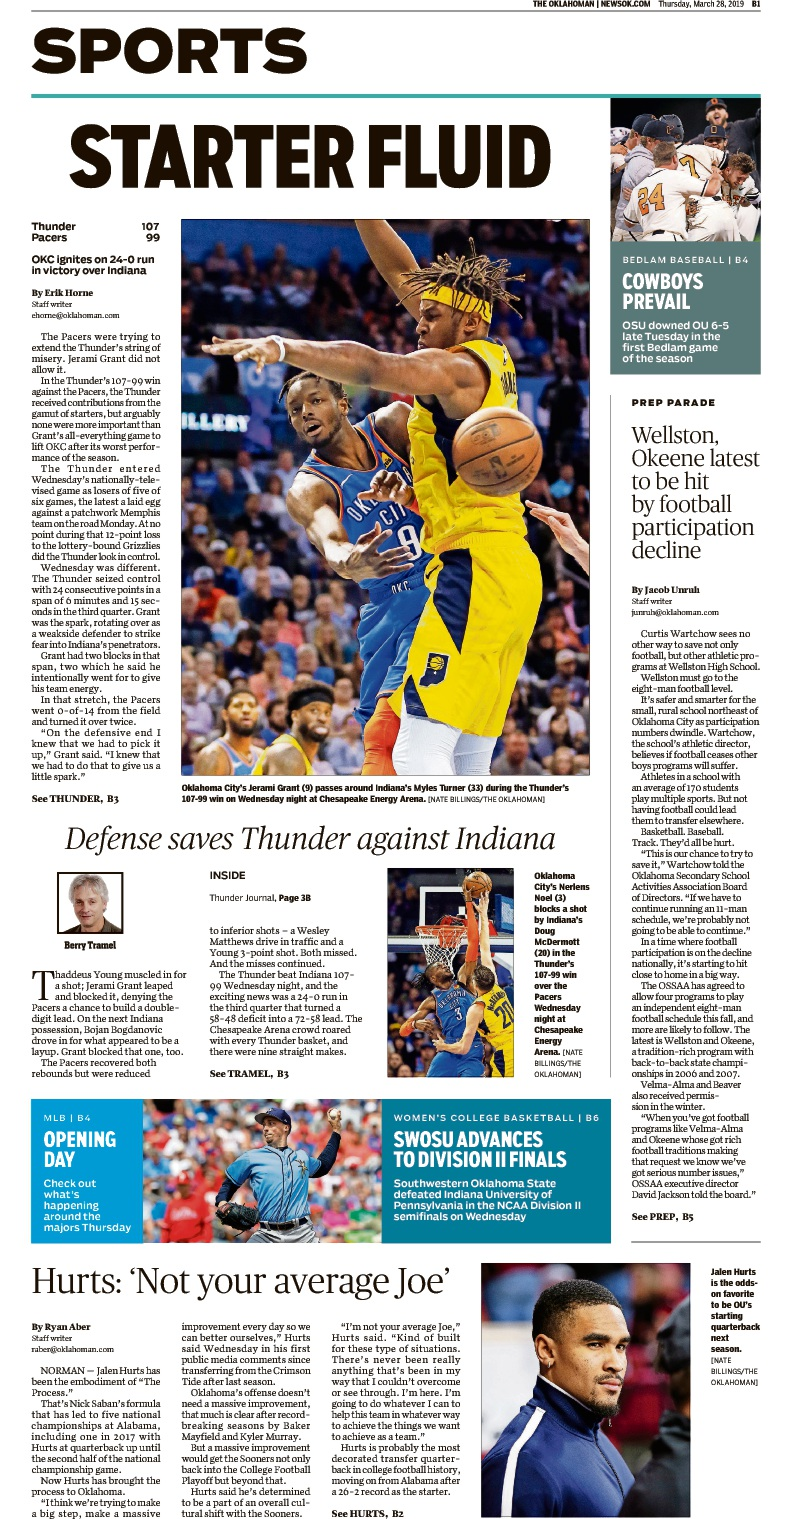 The Oklahoman Sports page